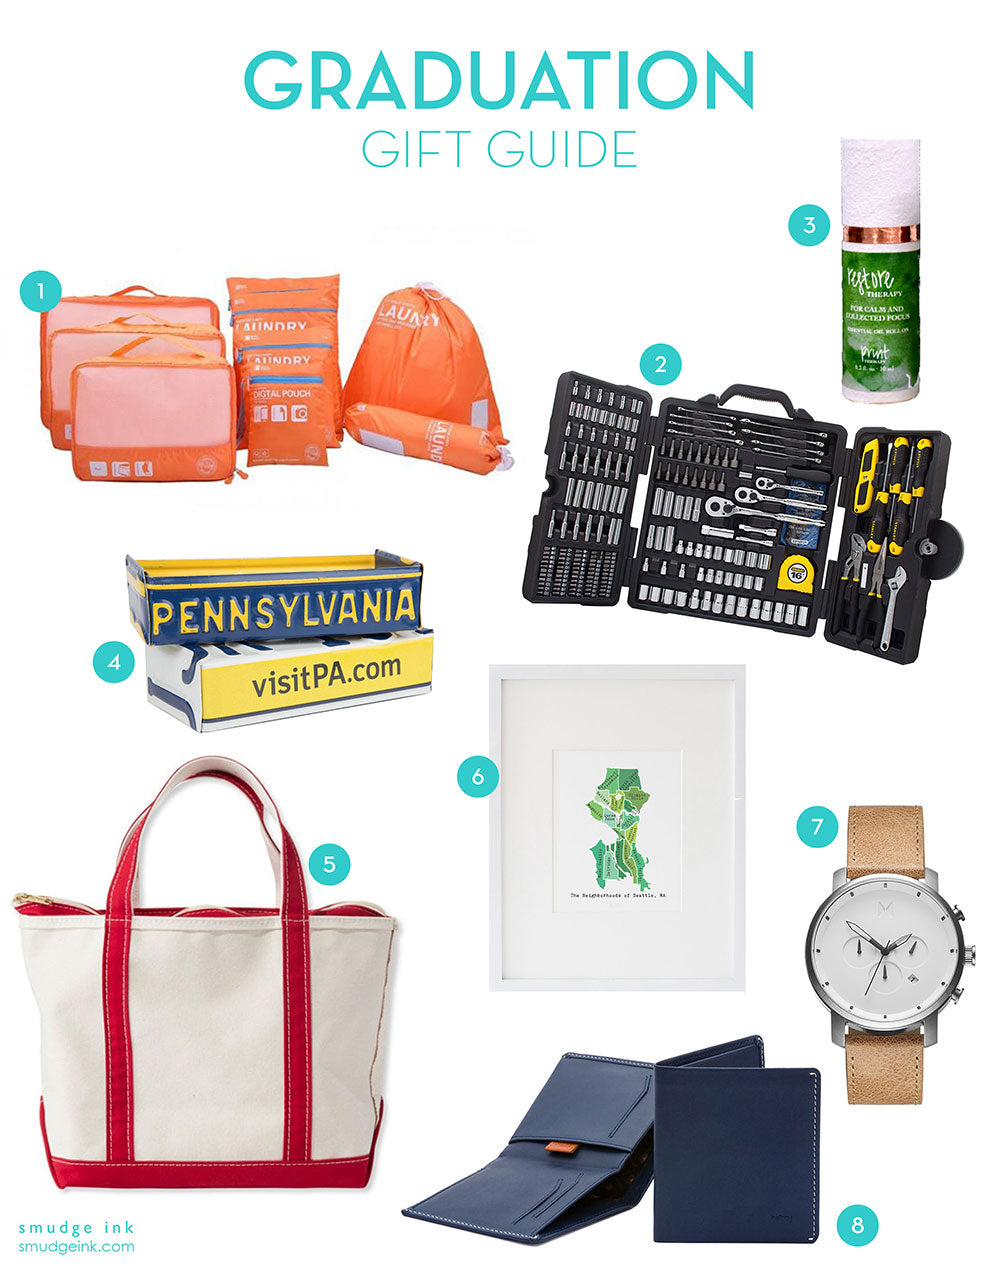 2018 graduation gift guide by smudge ink